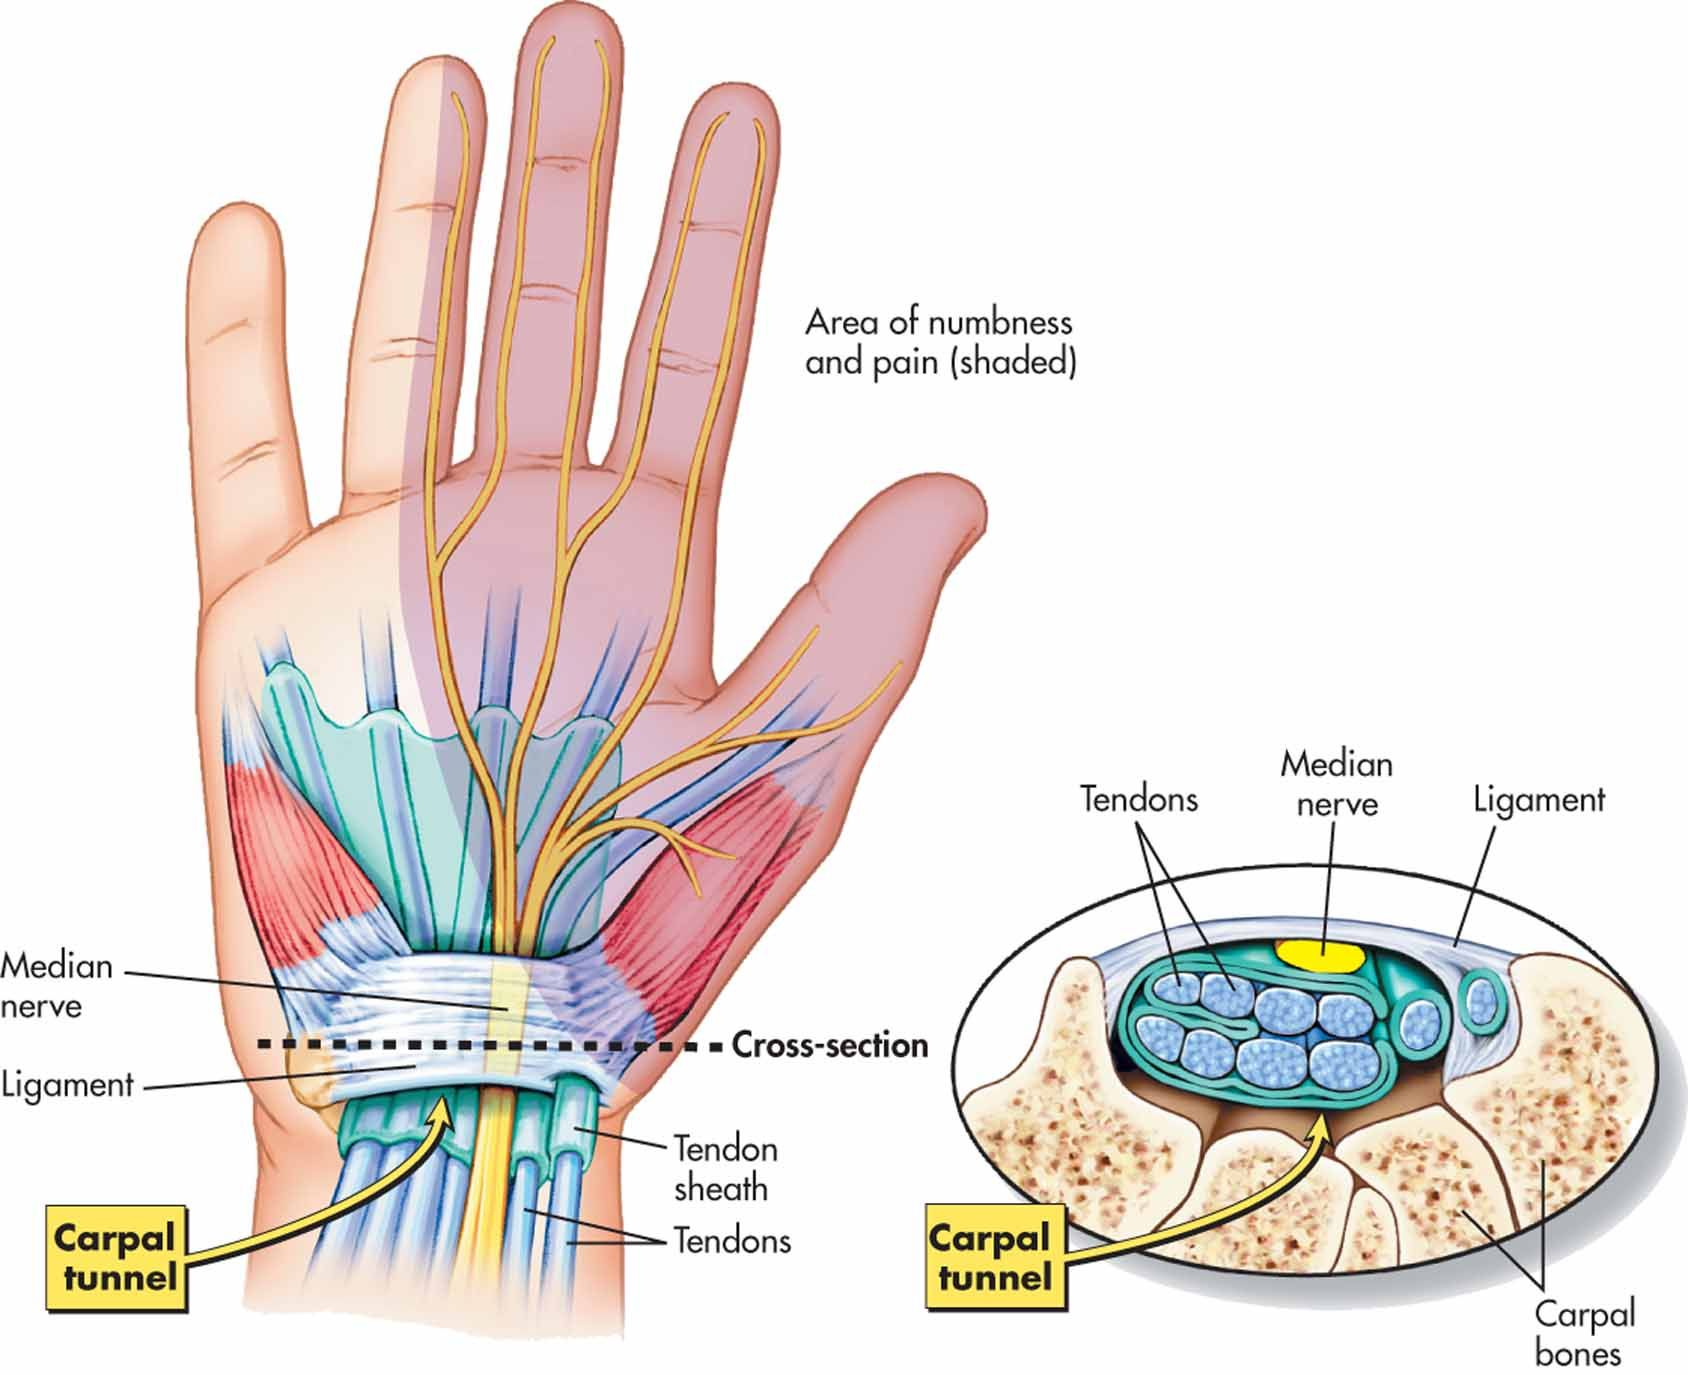 carpal tunnel #anatomy | Arm Hand Wrist | Pinterest | Carpal tunnel ...